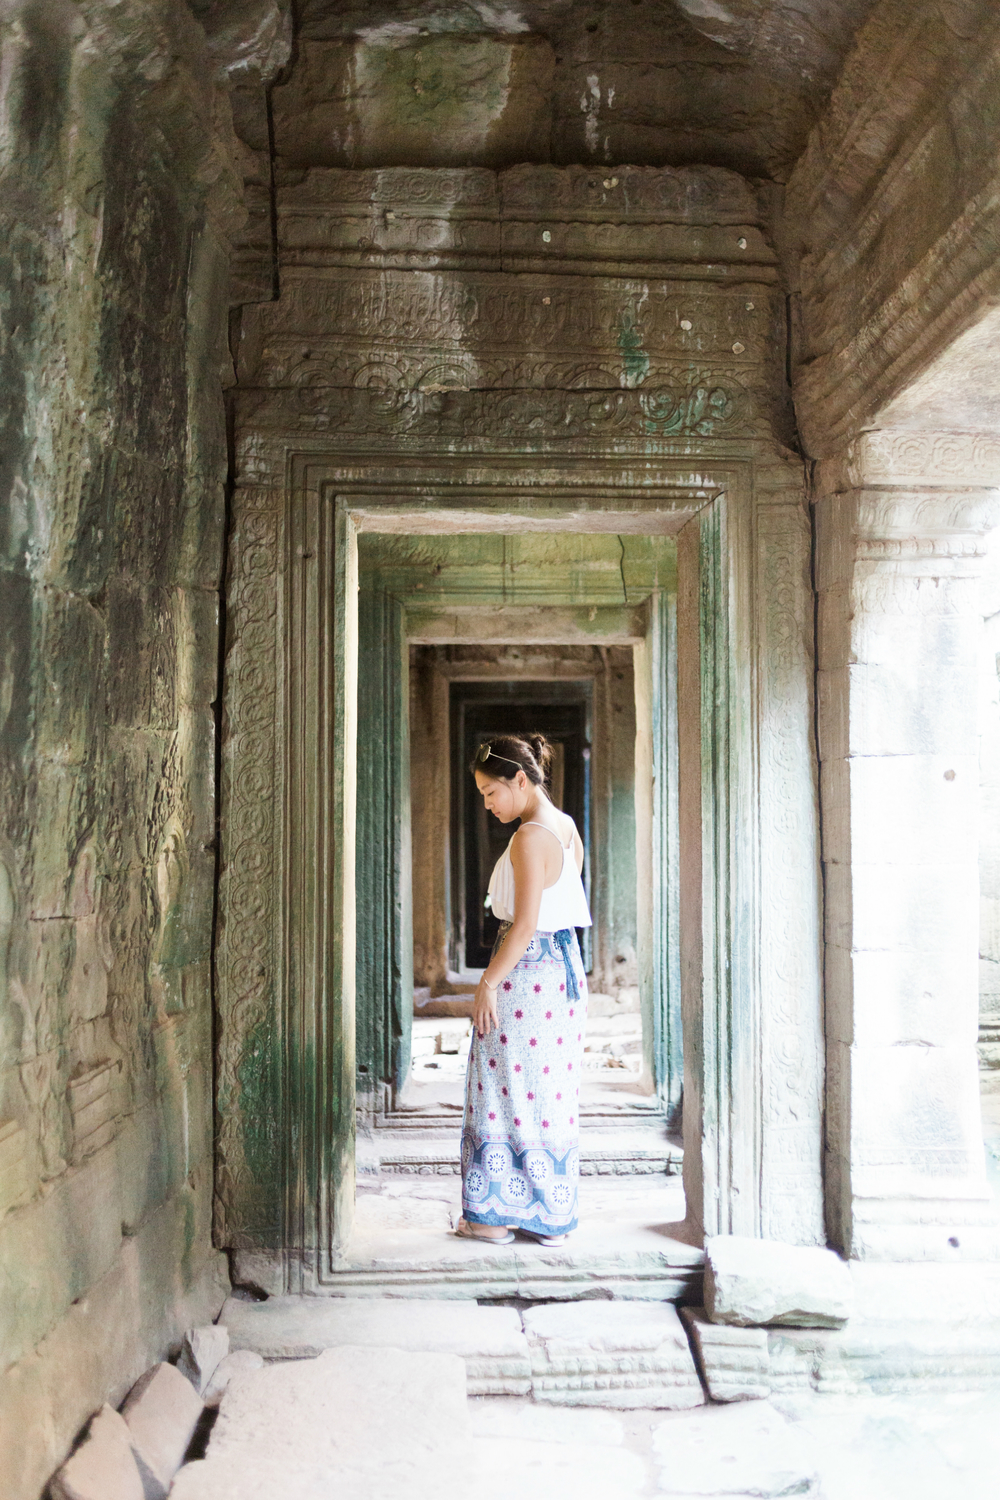 Cari Zhu Photography - Cambodia Siem Reap South East Asia Travel-1201.jpg